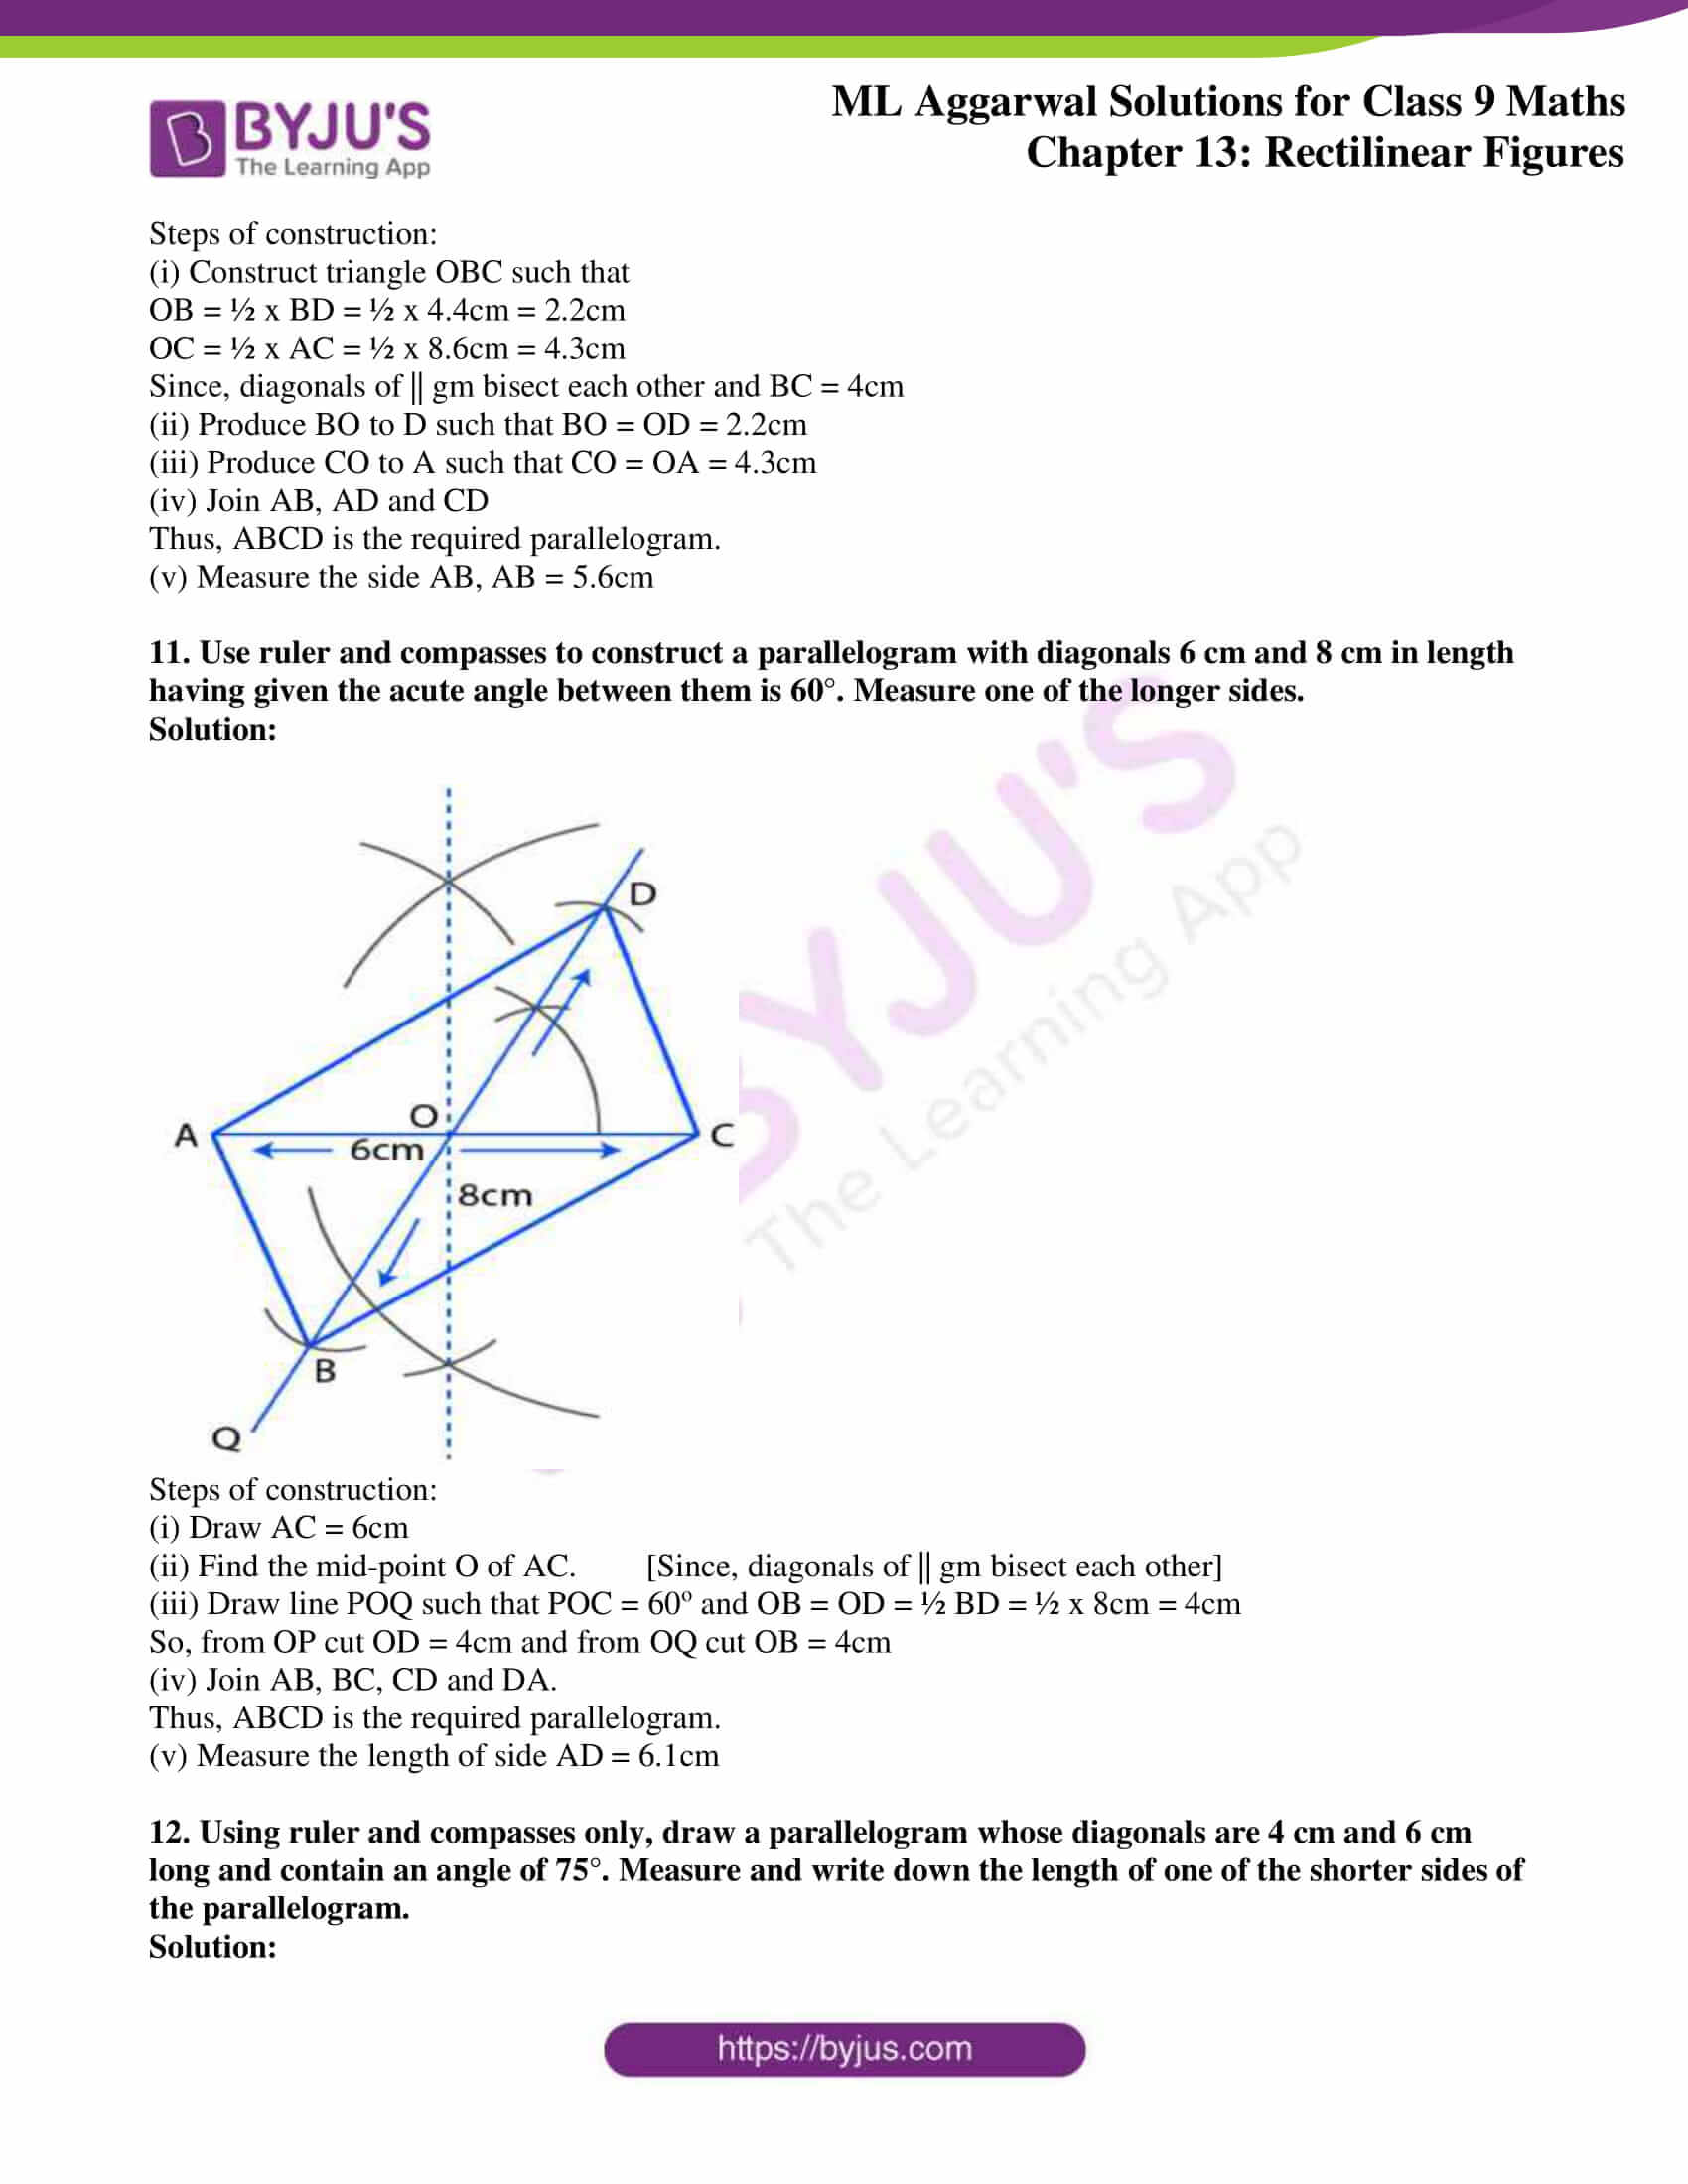 ml aggarwal solutions for class 9 maths chapter 13 30